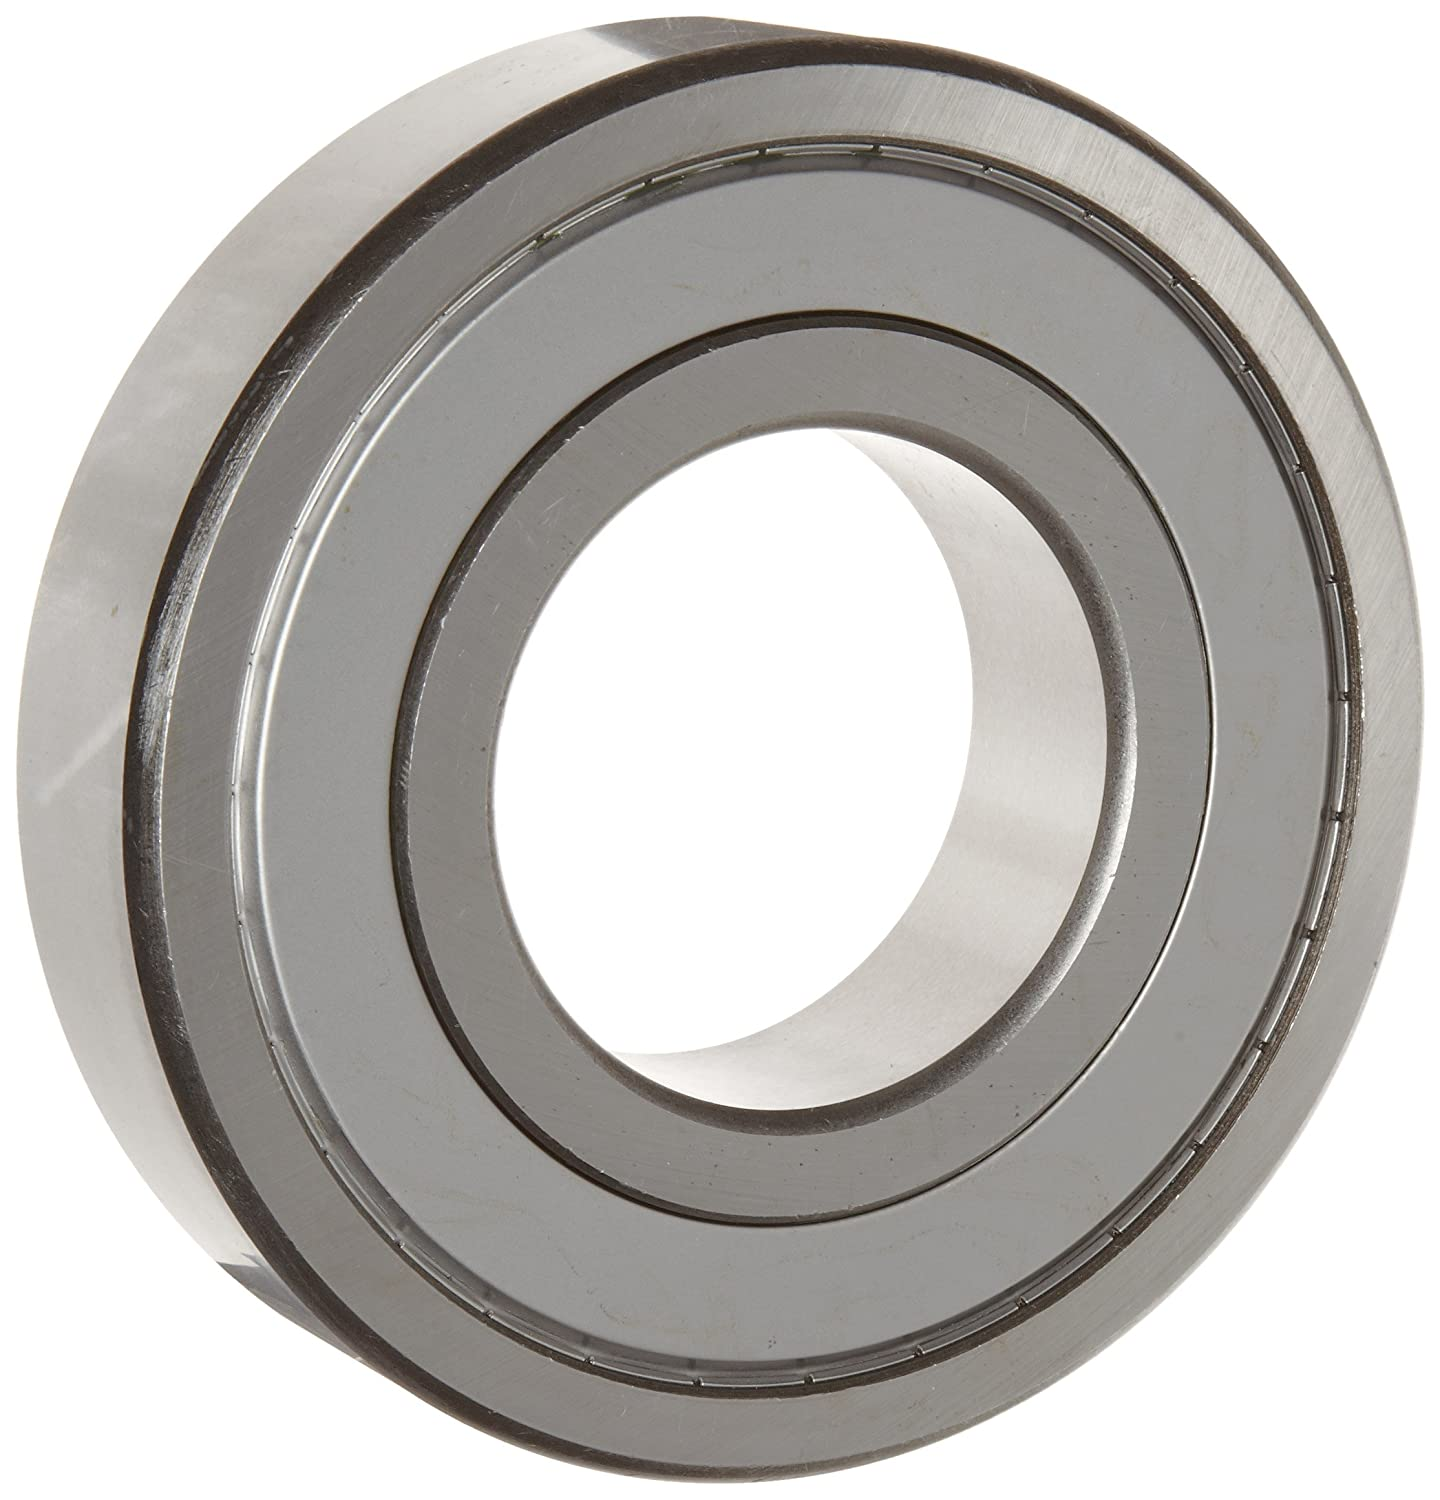 WJB 6316-ZZ Deep Groove Ball Bearing, Double Sheilded, Metric, 80mm ID,  170mm OD, 39mm Width, 27600lbf Dynamic Load Capacity, 19500lbf Static Load  Capacity: ...